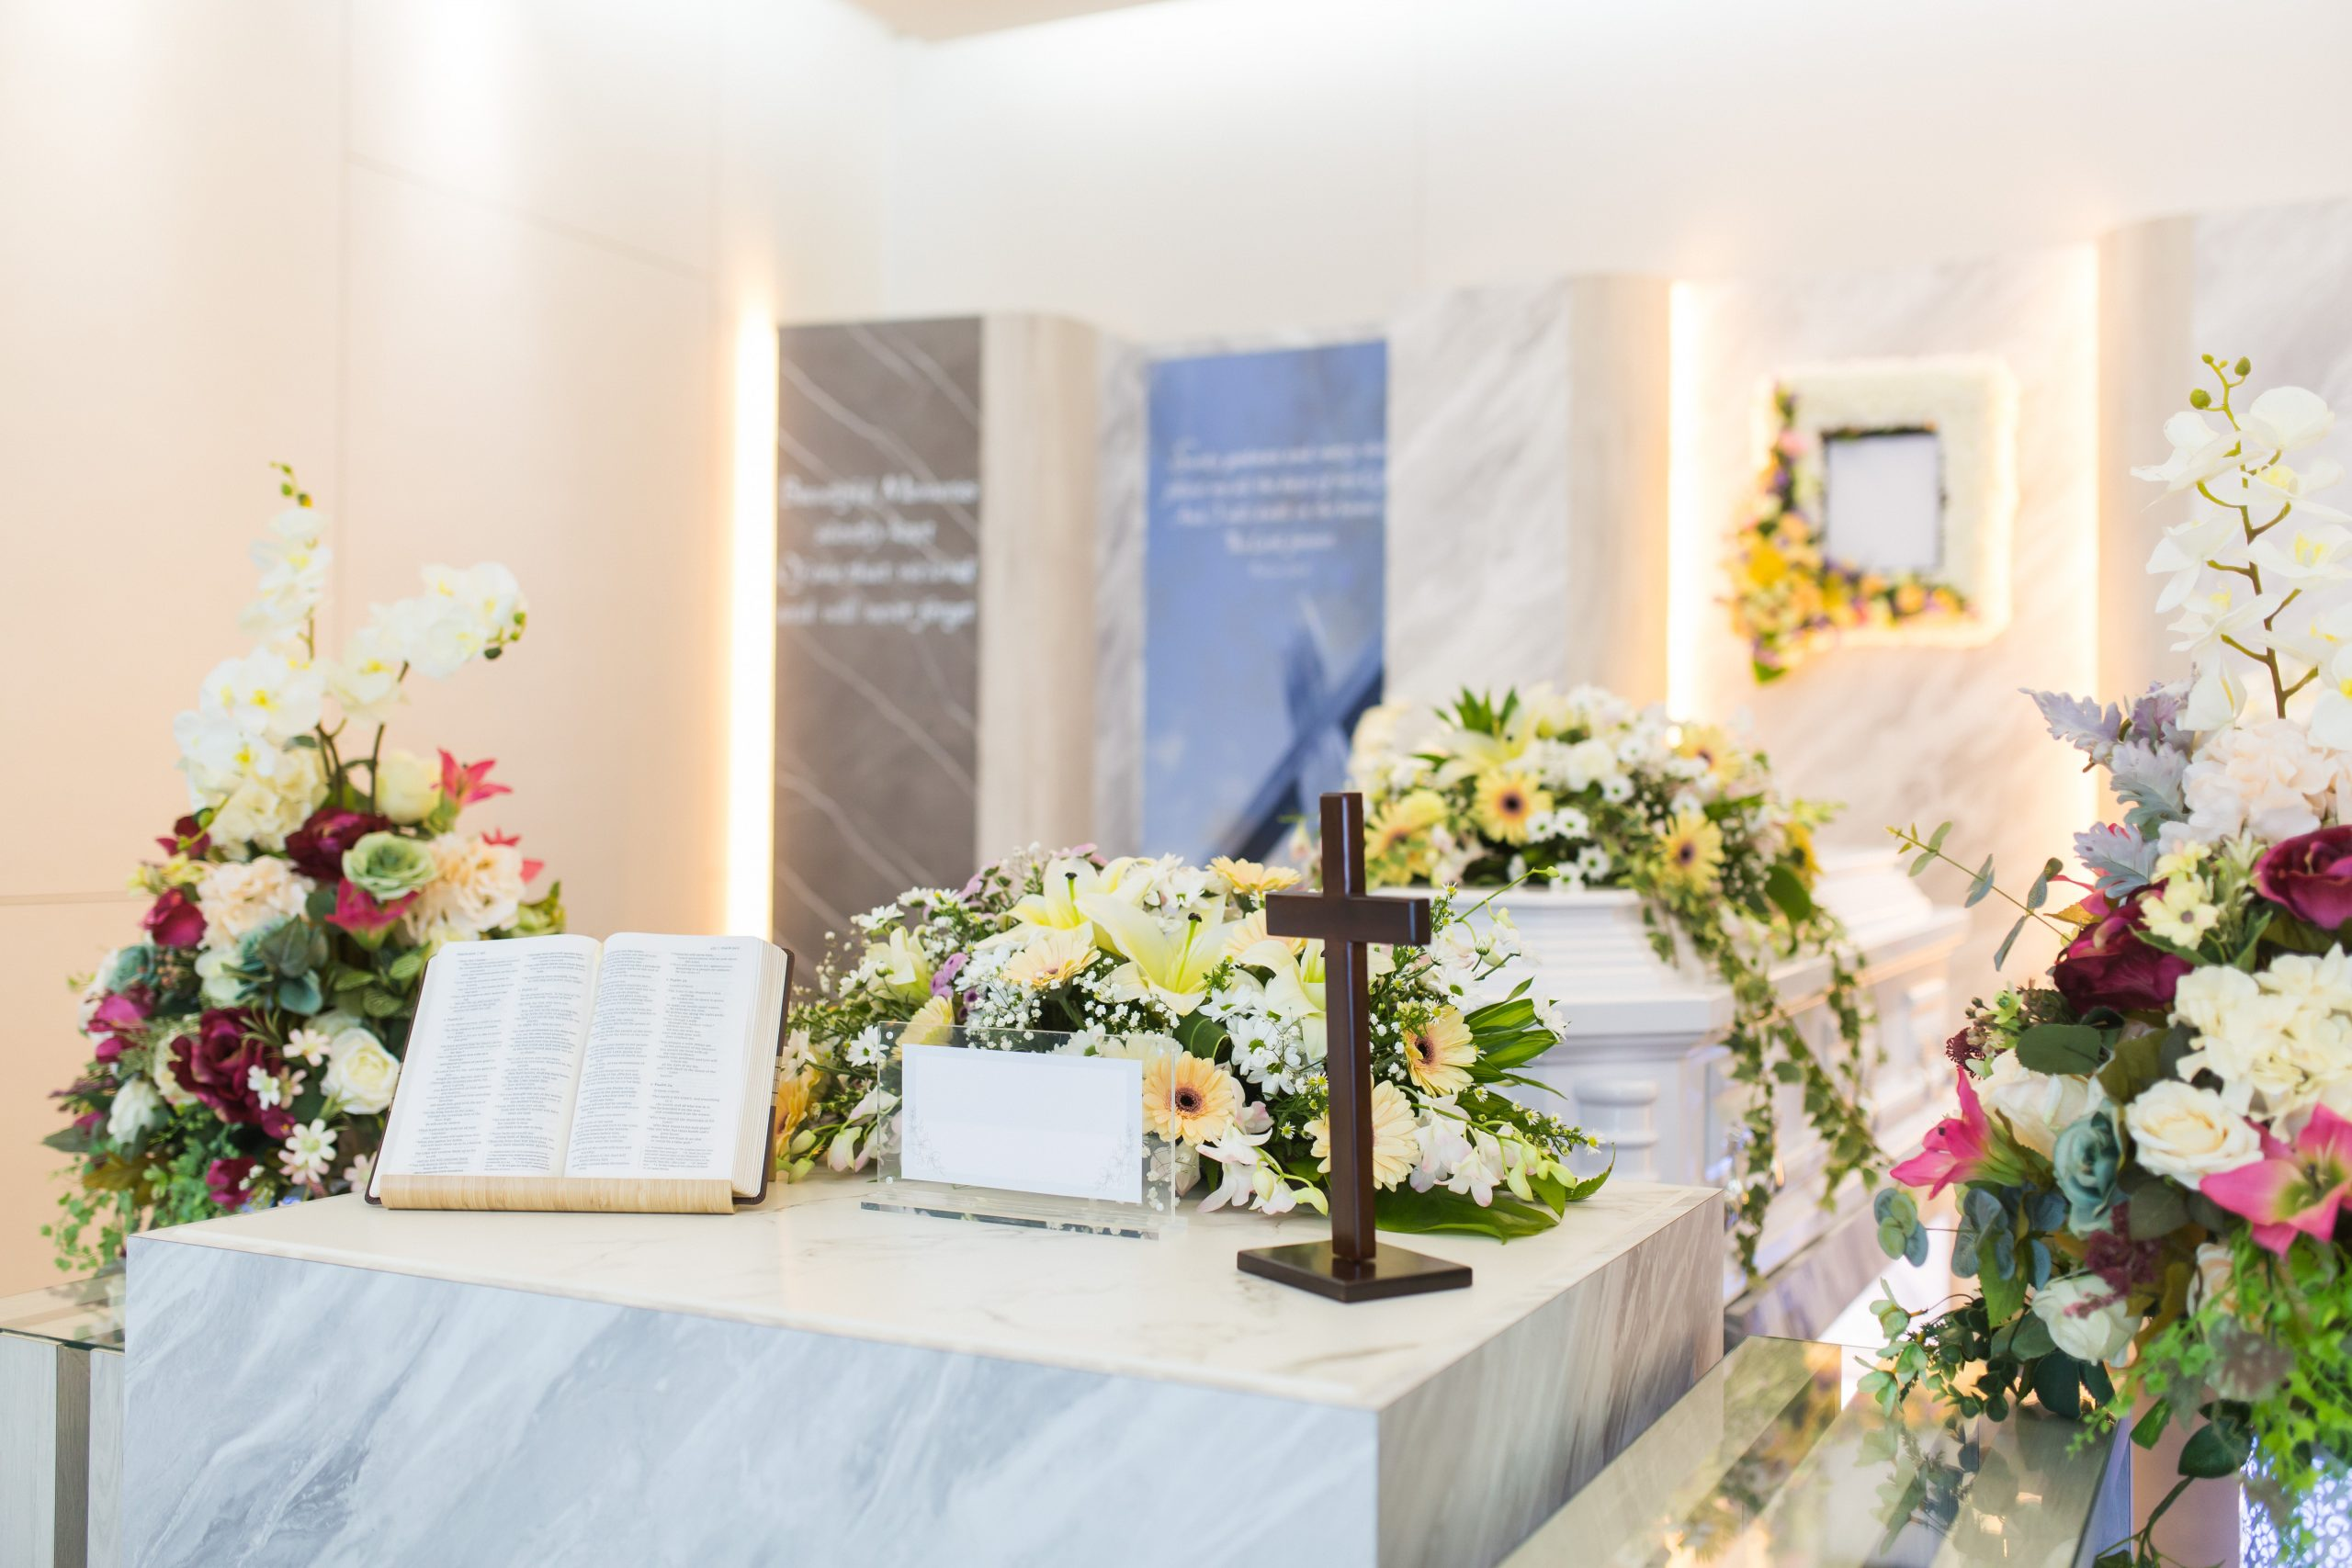 Funeral Services Singapore - Casket Fairprice Office and Showroom au